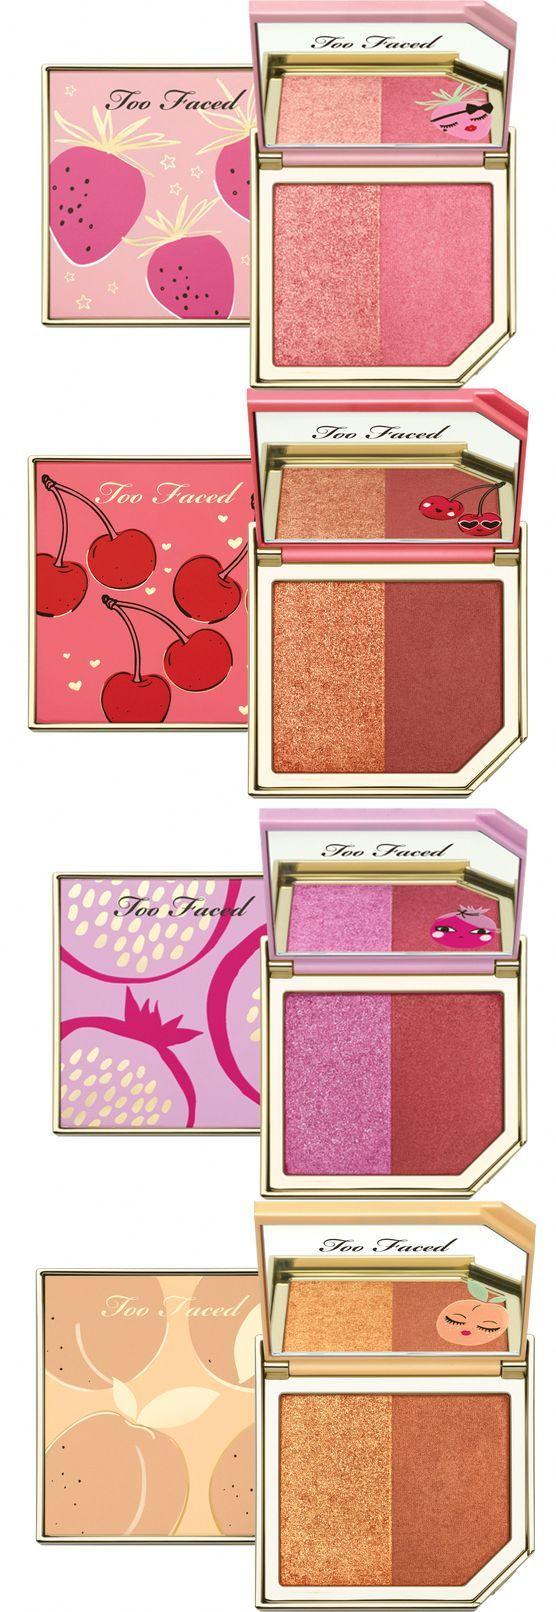 Too Faced Tutti Frutti Scented Makeup Available Right Now